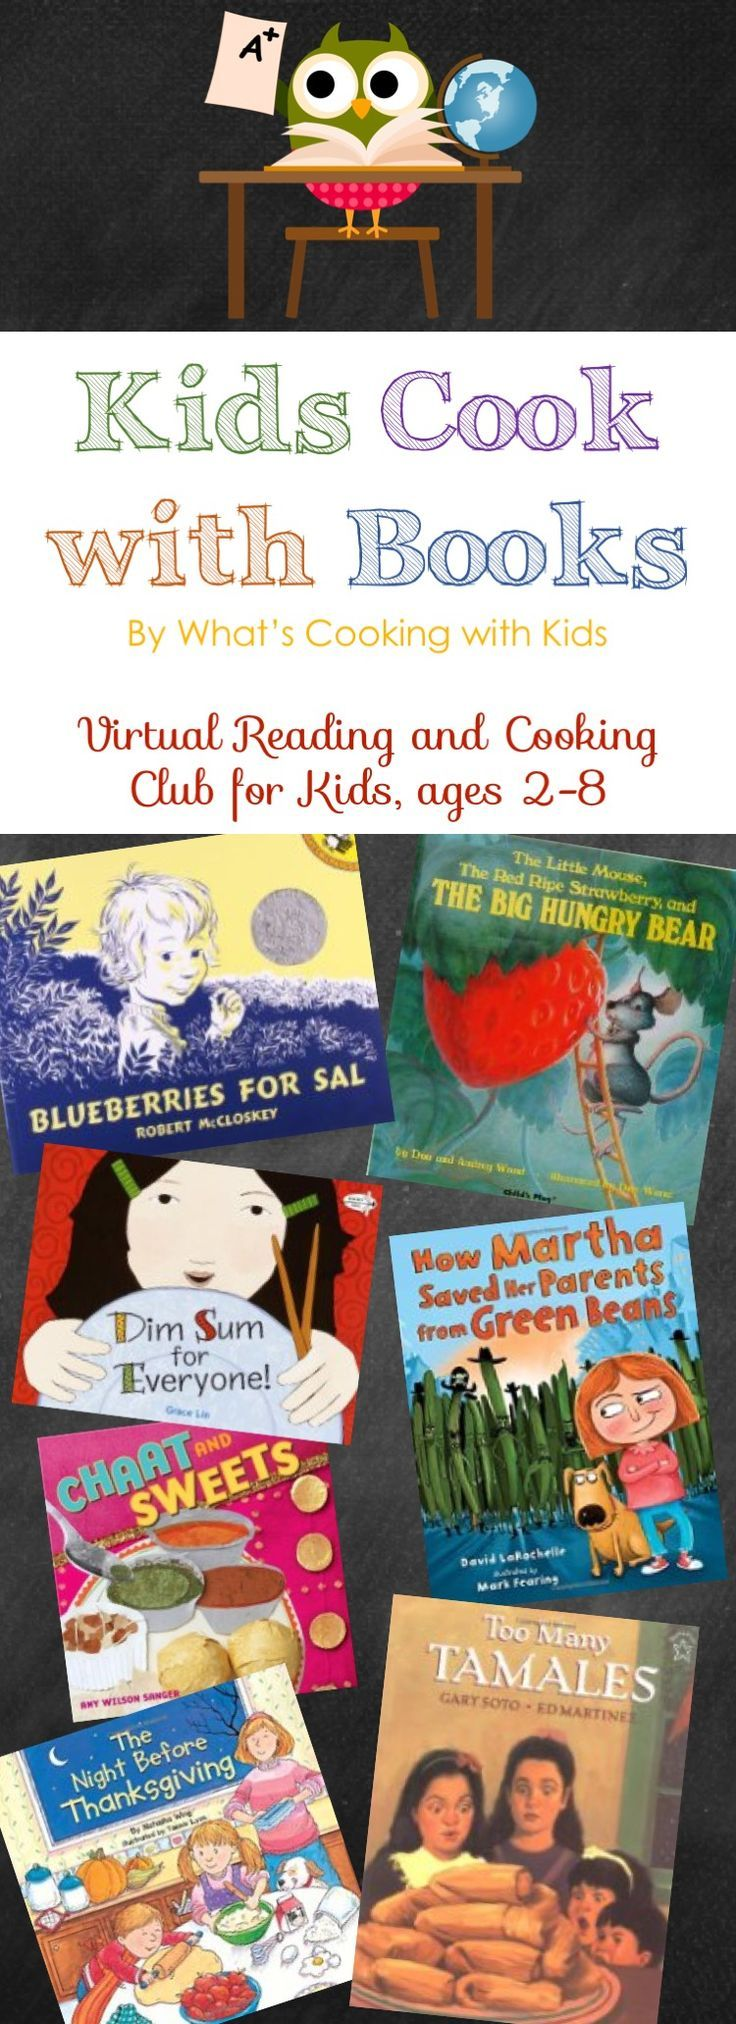 Kids Cook with Books